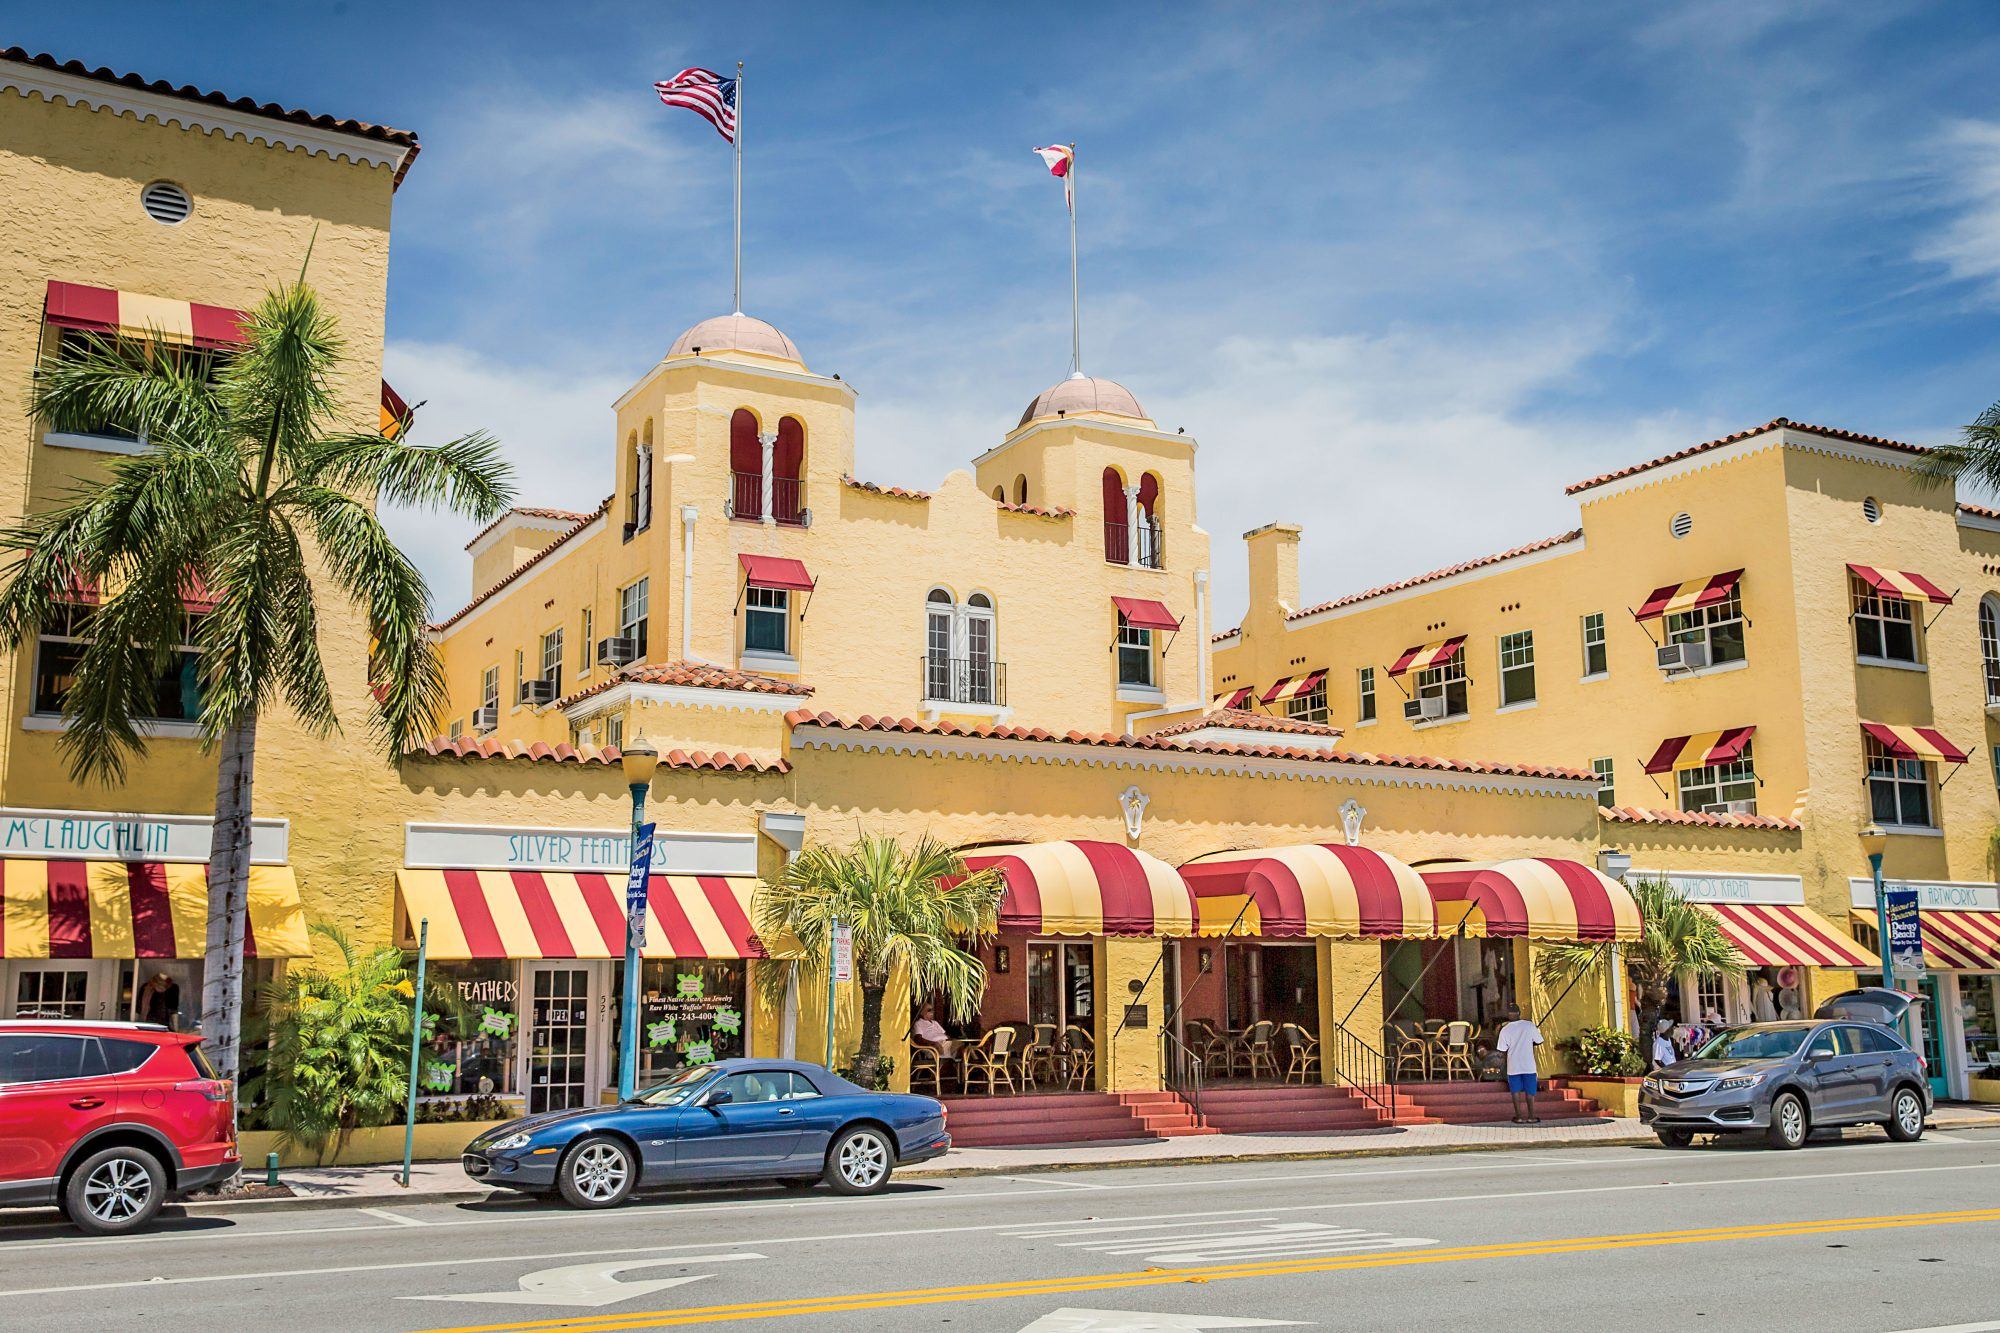 22. Colony Hotel & Cabaña Club (Delray Beach, Florida)